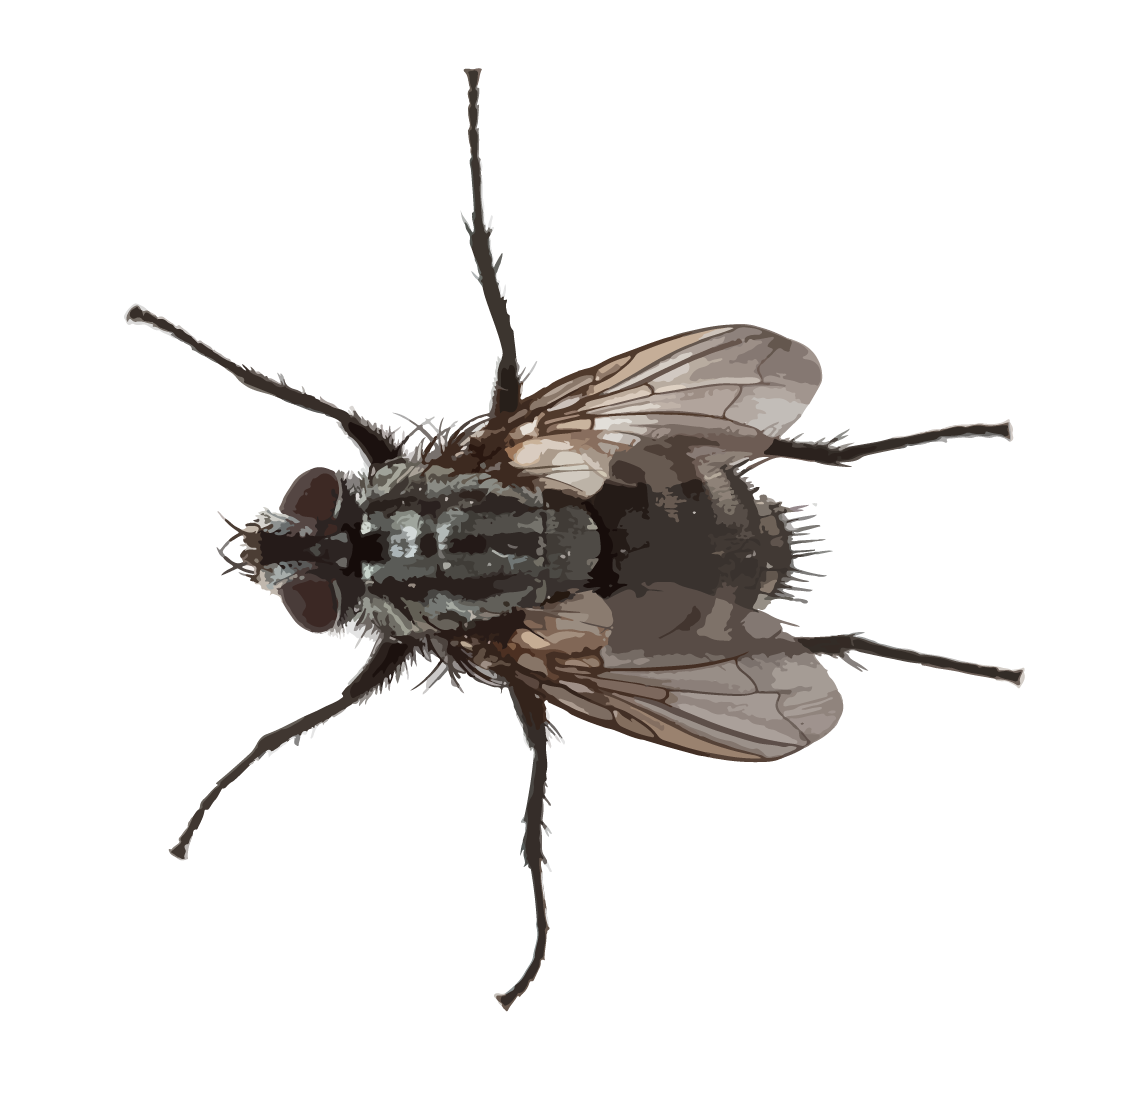 Flying Pests - Texas attracts many varieties of flies, all of which we can help you eliminate. We have seen many homes with small flies like gnats or fruit flies, they are frequently drain flies. The adult cluster fly is about 3/8″ long, slightly larger than the common house fly. Their coloration is a non-metallic, dark gray. The thorax lacks distinct stripes and has numerous short golden hairs. The abdomen has irregular lighter areas. Adult fruit flies are 1/8″ long and yellow-brown to dark brown. Some species have distinctive red eyes, and the wings have two breaks in the leading edge nearest the body. The larvae are small and very distinctive with an extended, stalk-like breathing tube at the rear of the body.